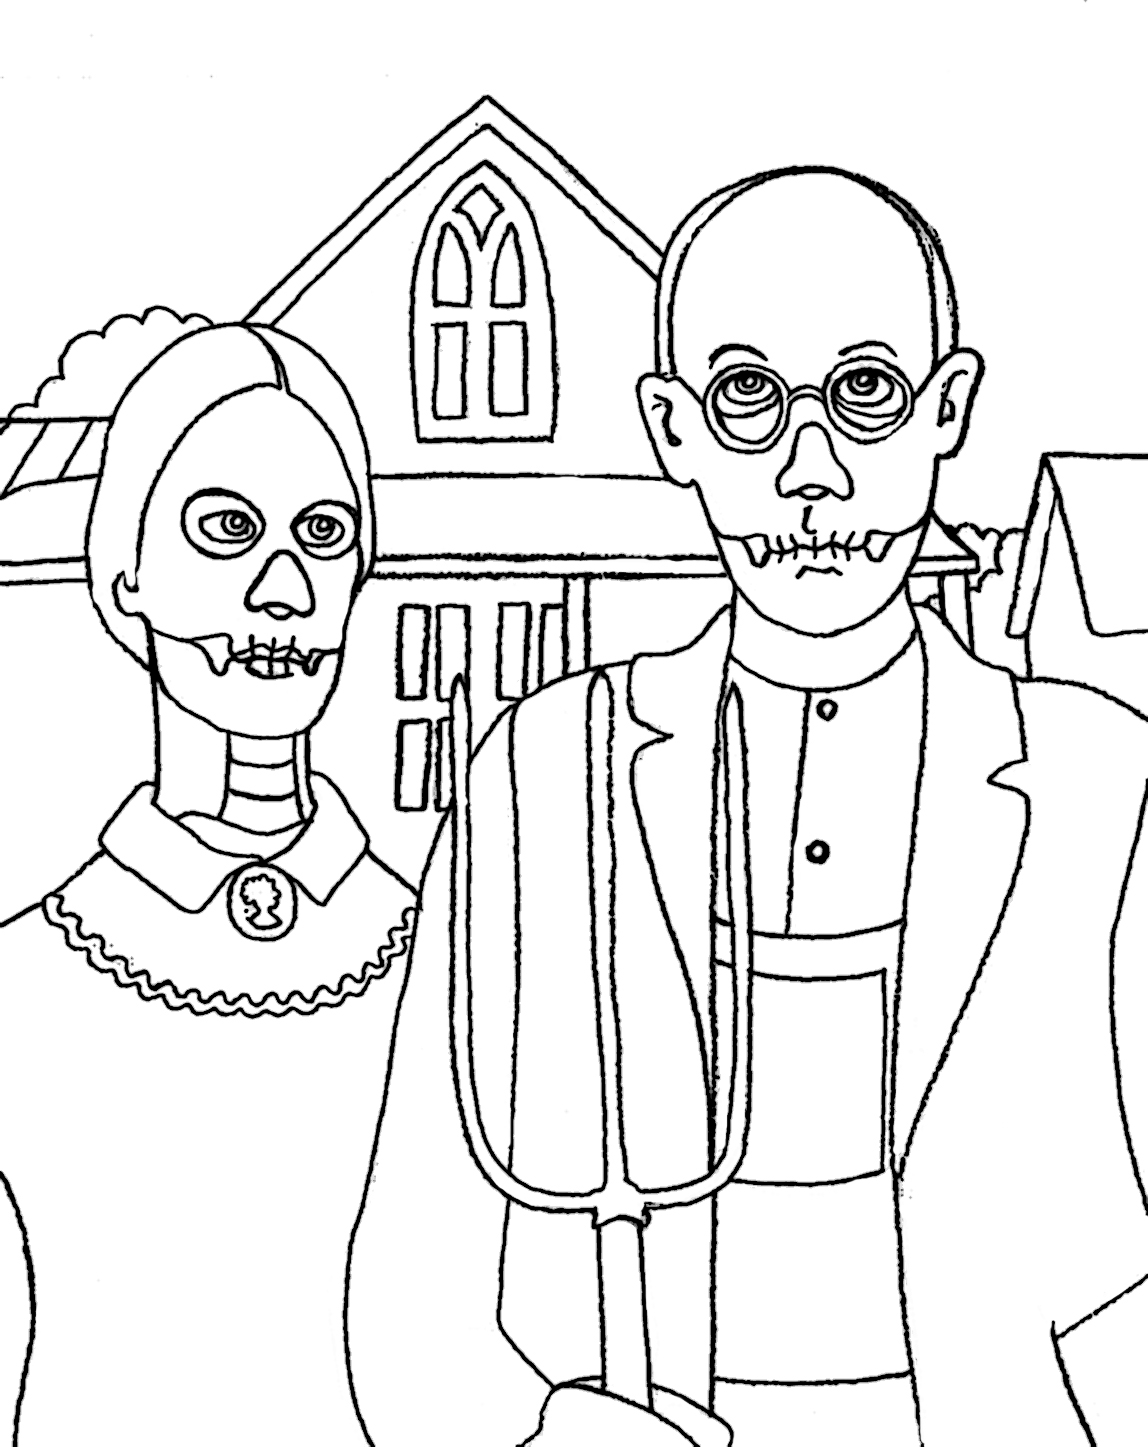 yucca flats n m wenchkin u0027s coloring pages skeletal american